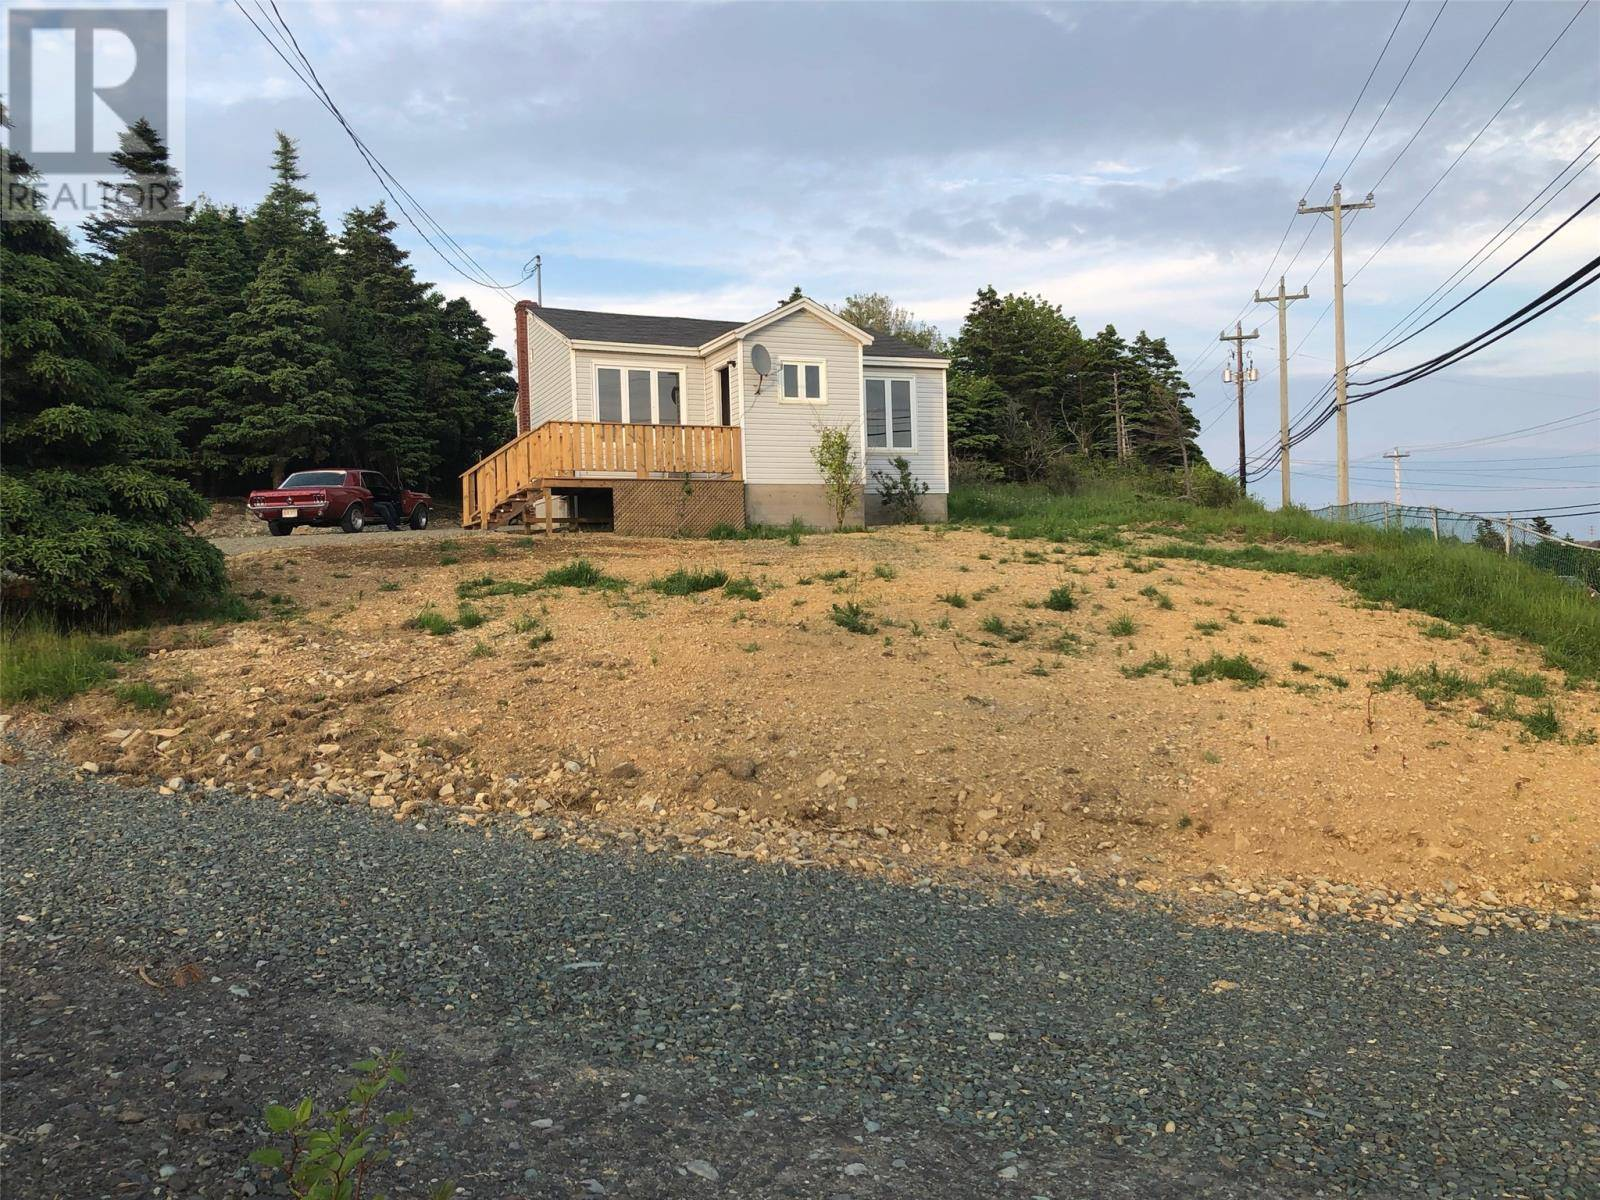 Home for sale at 1462 Topsail Rd Paradise Newfoundland - MLS: 1208868